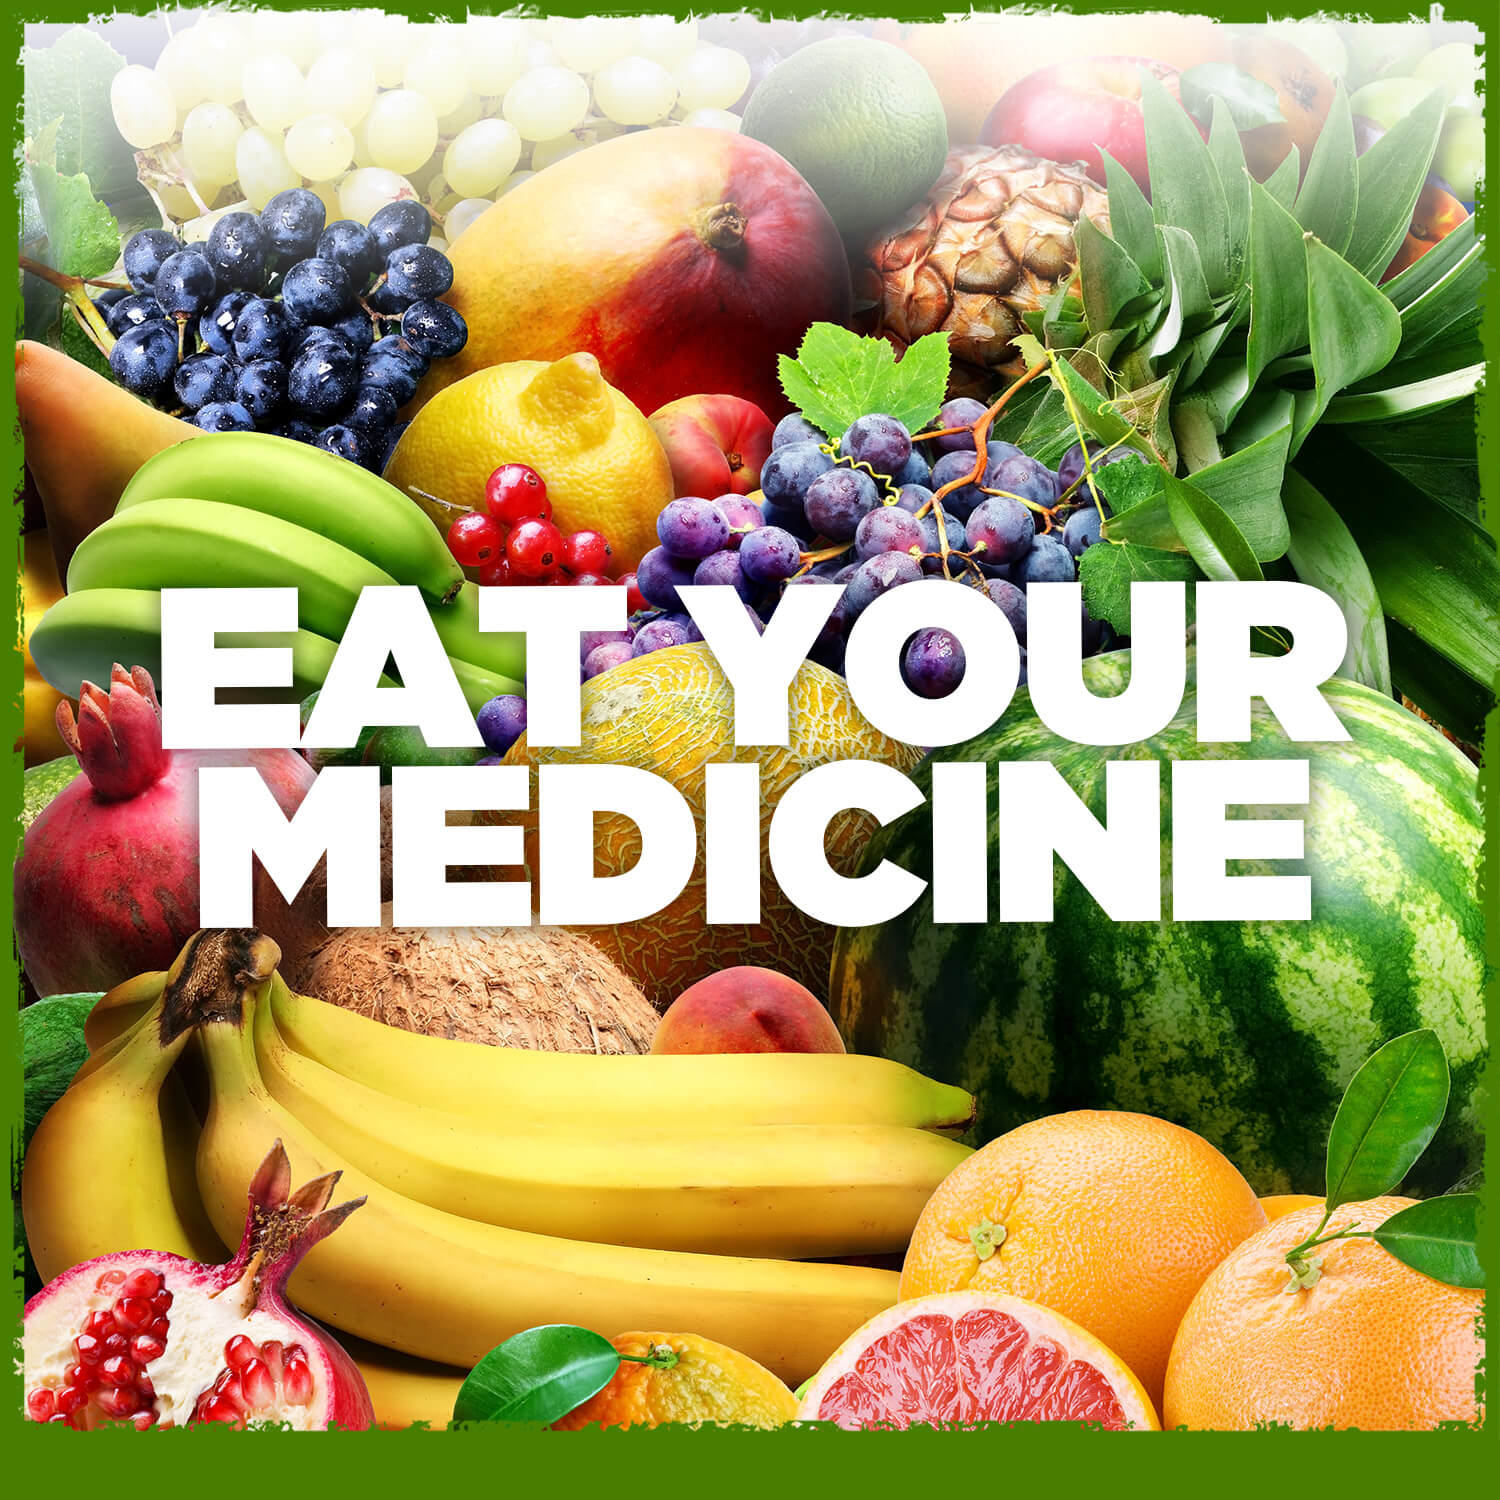 FRN EatMedicine2017 - Plant Powered & Thriving: FREE summit from the Food Revolution Network